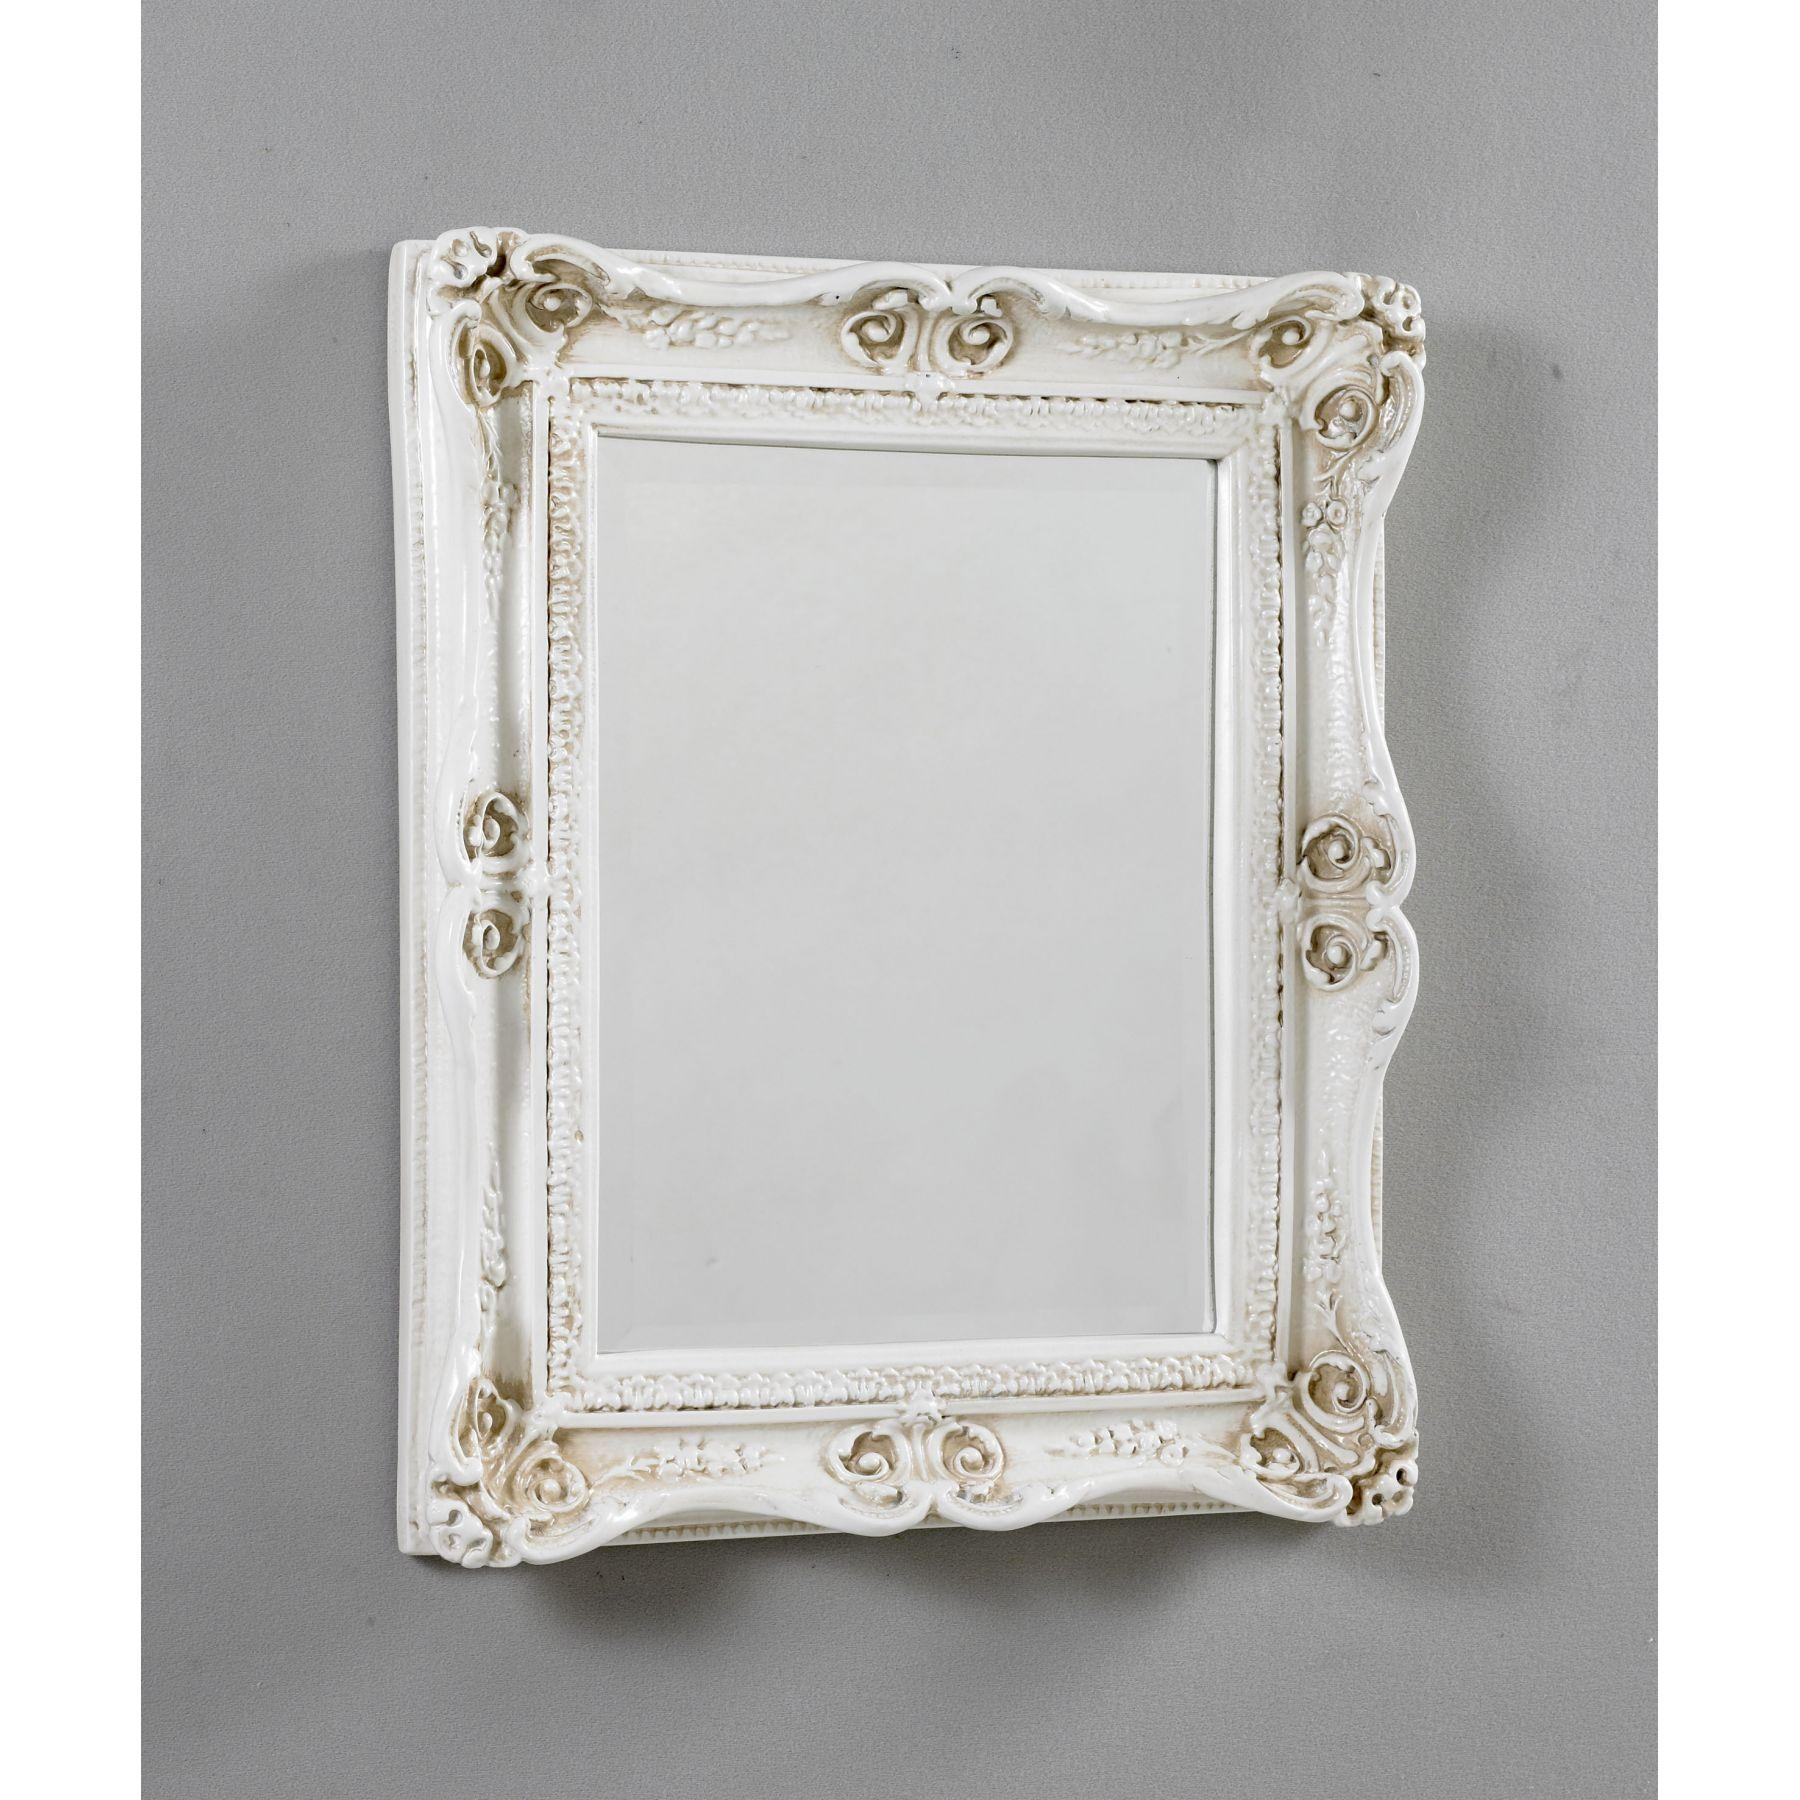 Old Mirrors For Sale 105 Fascinating Ideas On Antique Mirrors Inside Antique Mirrors For Sale Vintage Mirrors (View 14 of 20)